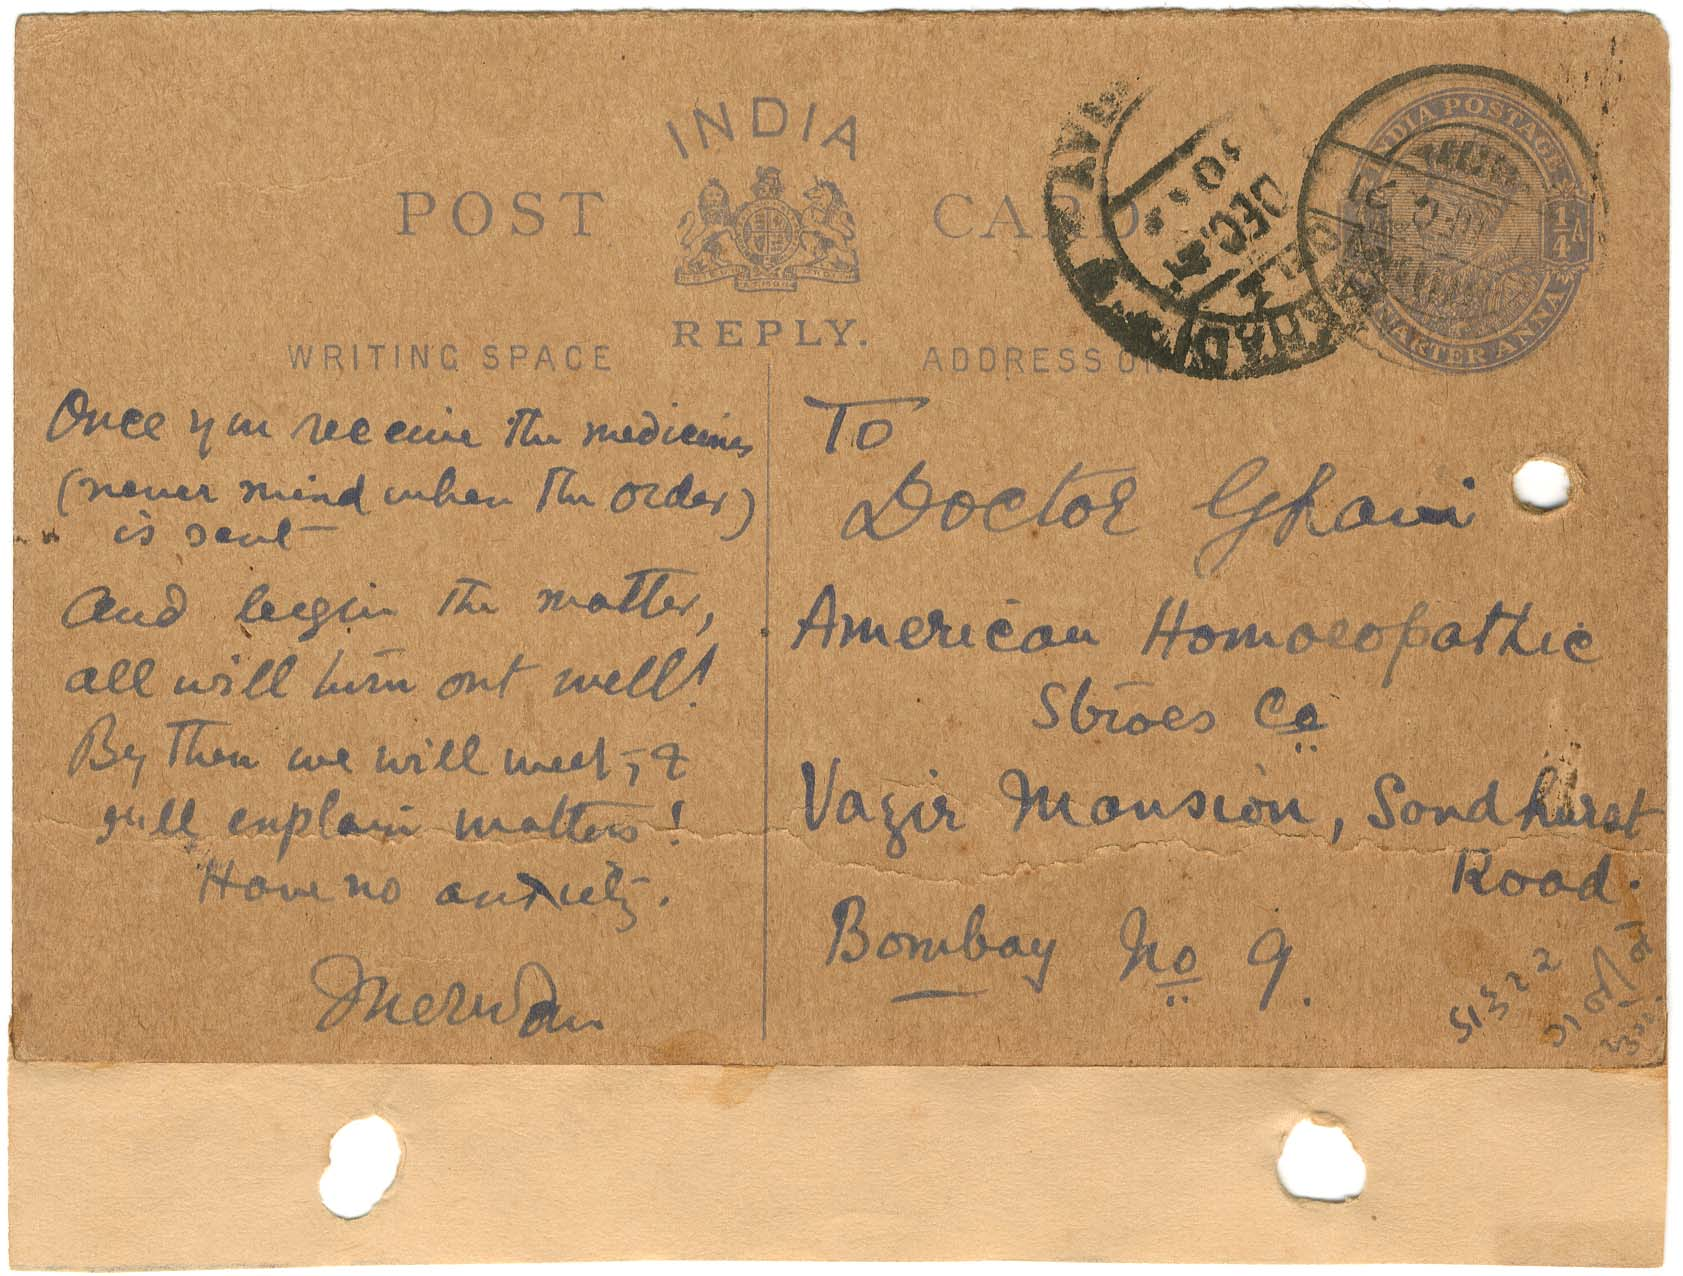 """MEHER BABA'S signature, """"Merwan,"""" is at the end of His letter to Dr. Abdul Ghani Munsiff on December 30, 1921. Meher Baba also repeats in the closing, """"Have no anxiety."""" (Image: Courtesy  Avatar Meher Baba Trust Archives )"""